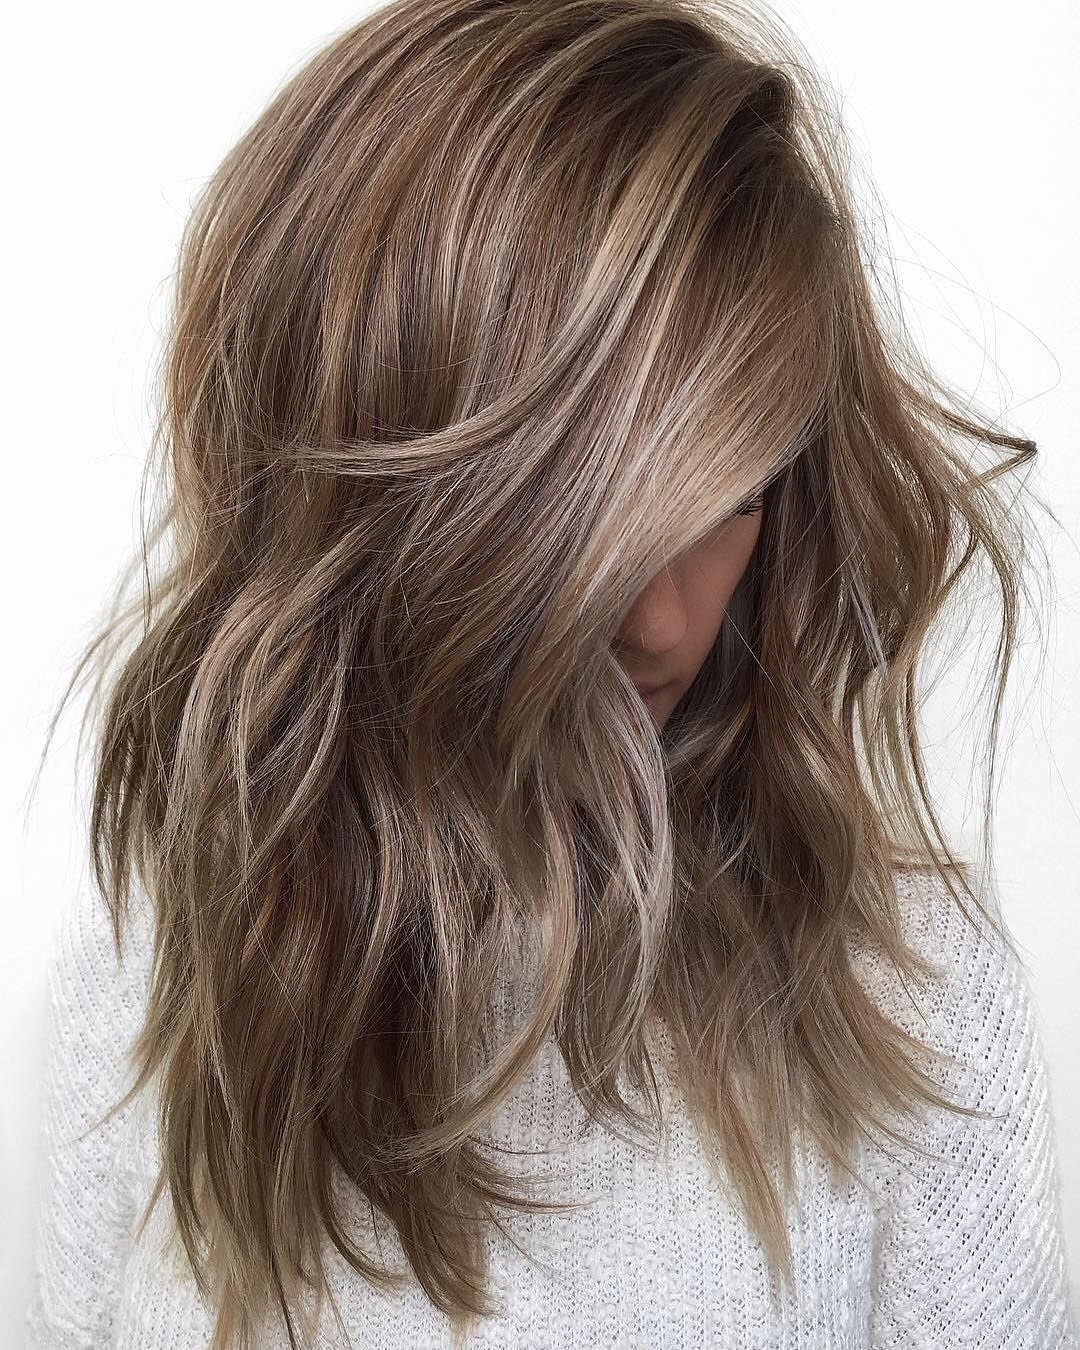 10 Balayage Ombre Hair Styles for Shoulder Length Hair ...